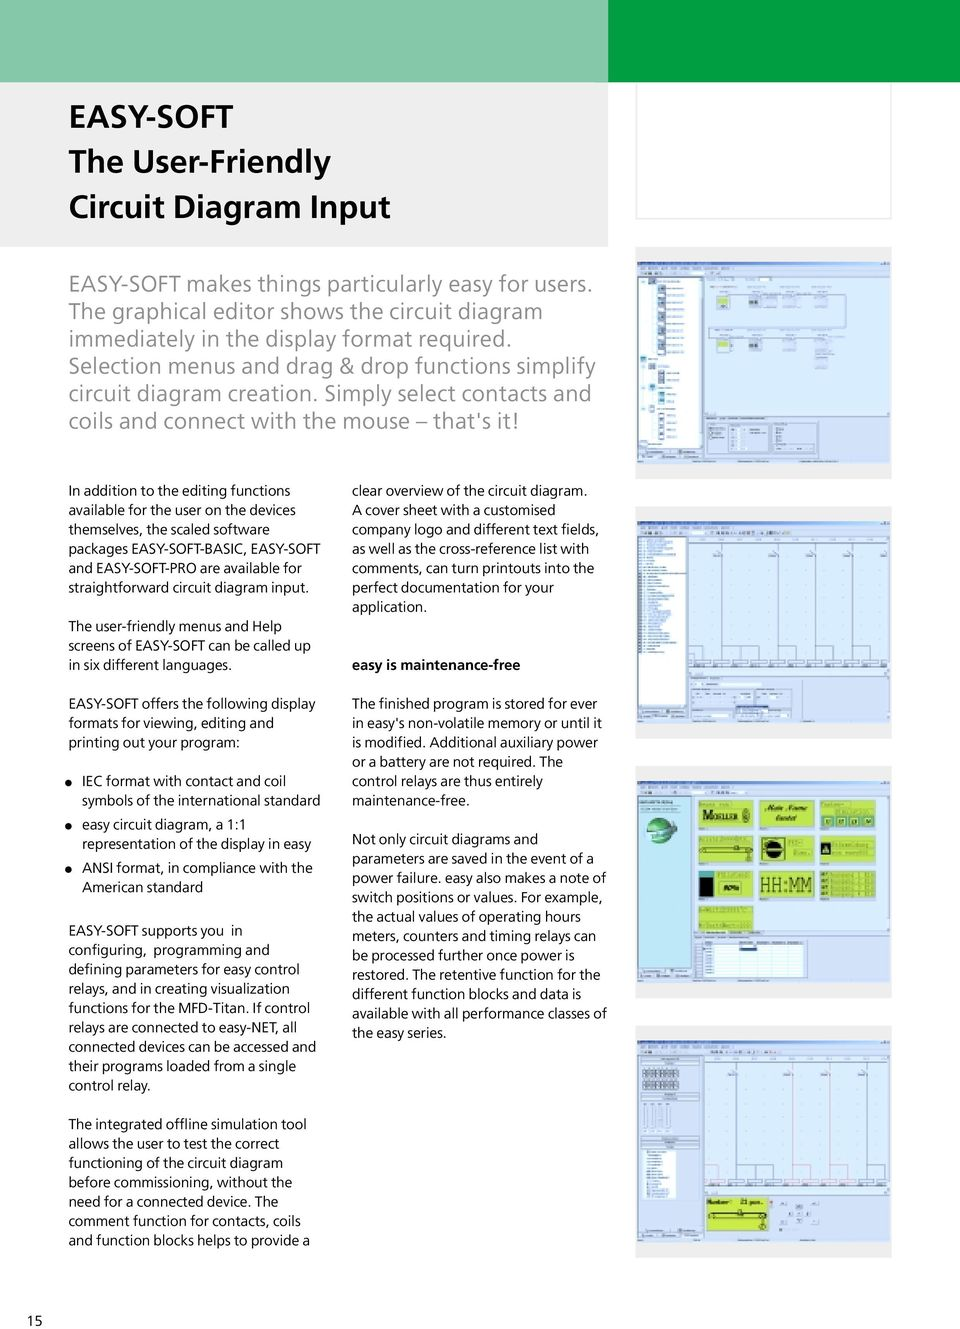 Display Operate Switch Control Regulate And Communicate Pdf Electrical Timer Relay Symbols In Addition To The Editing Functions Available For User On Devices Themselves